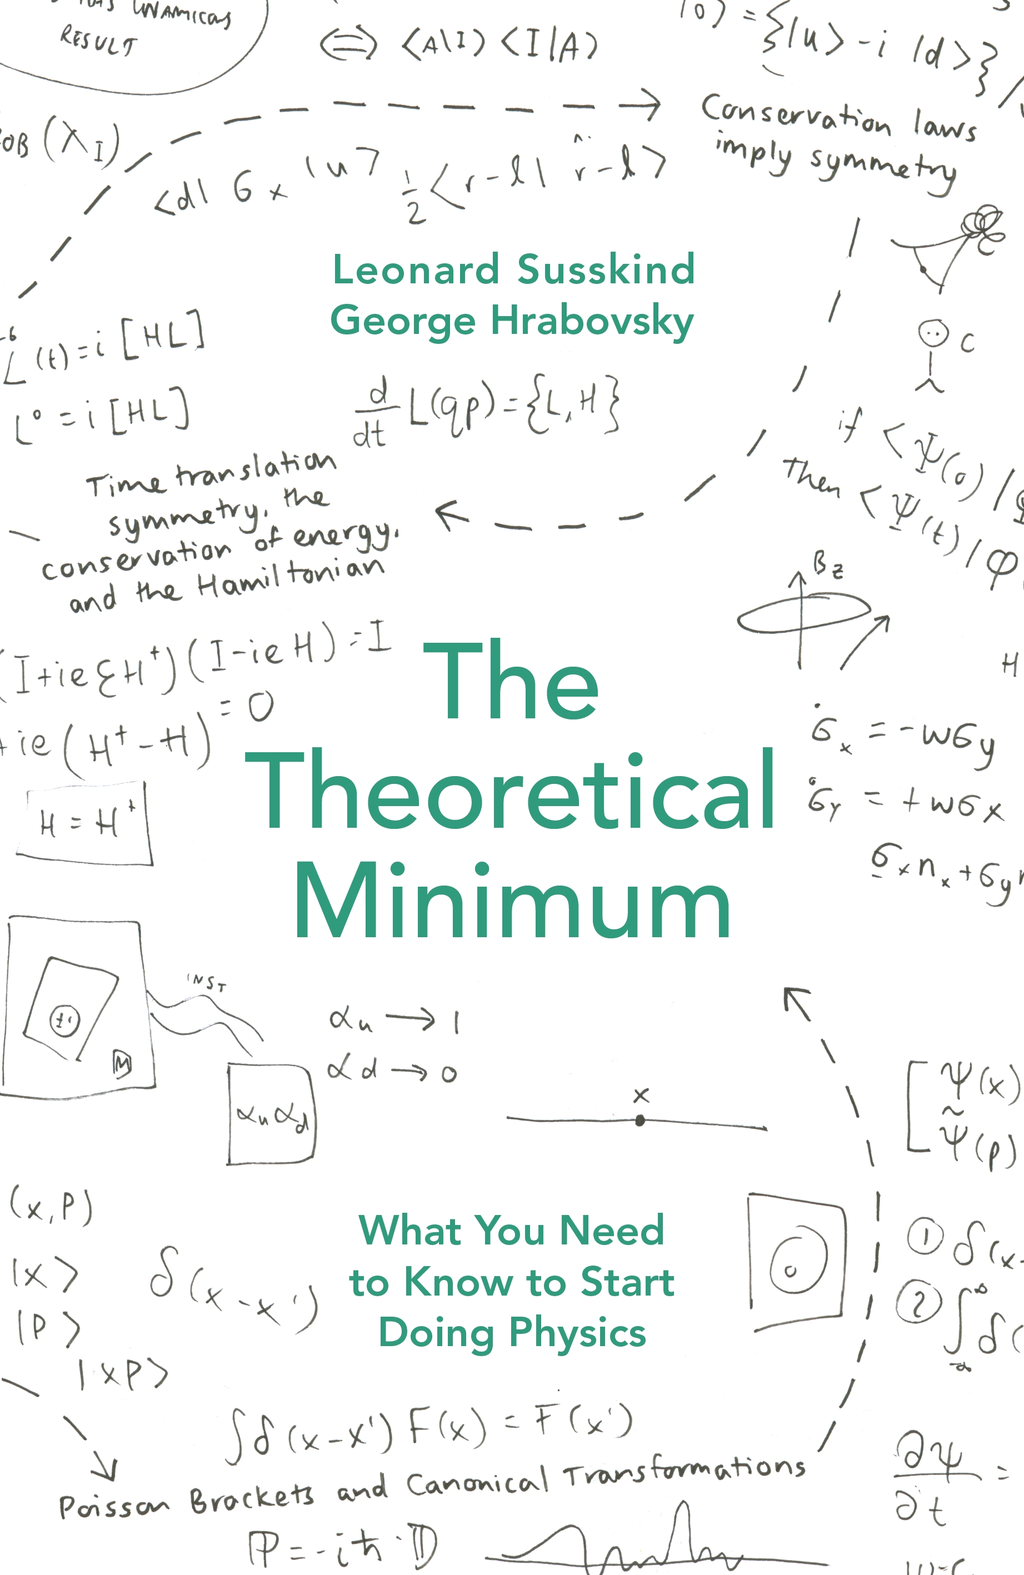 The Theoretical Minimum What You Need to Know to Start Doing Physics